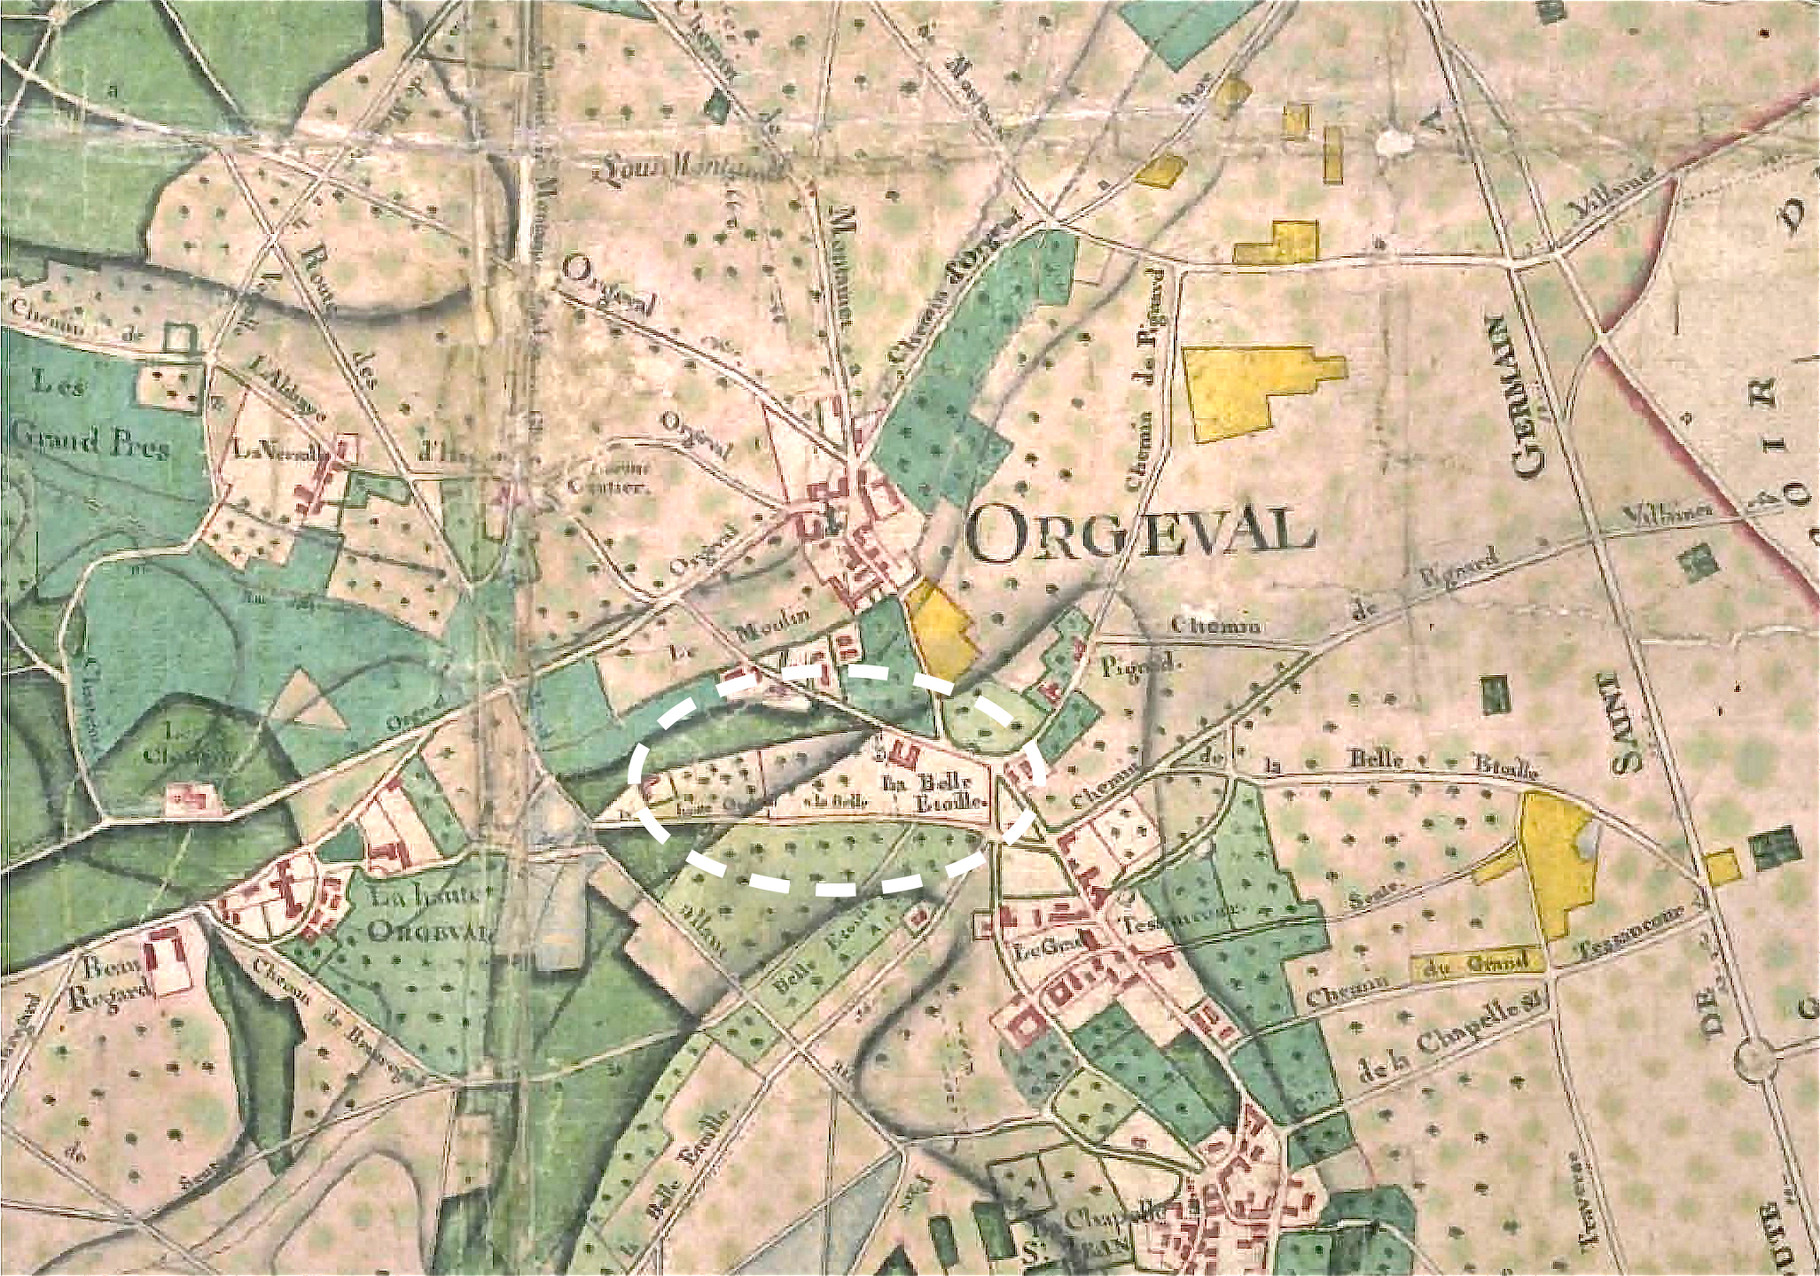 Plan d'intendance de la paroisse d'Orgeval, 1787 - Source: Archives 78